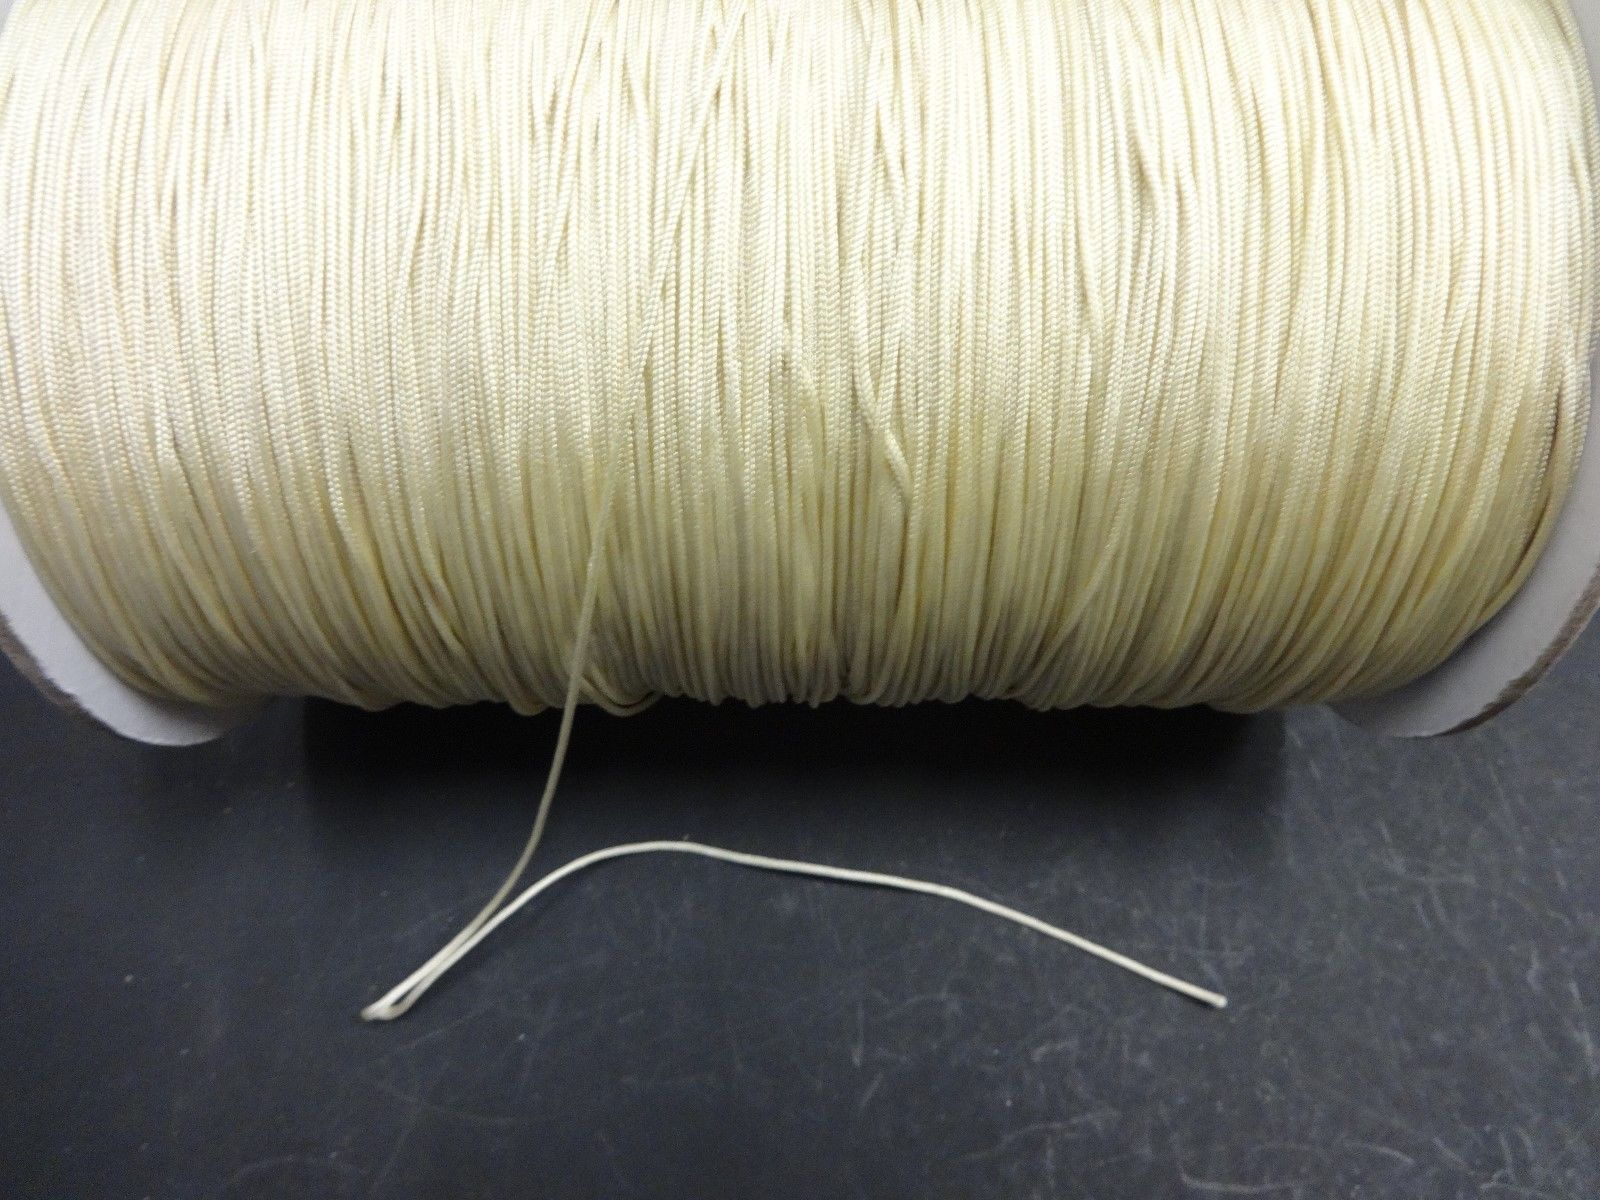 25 FEET:1.4mm Biscuit LIFT CORD for Blinds, Roman Shades and More